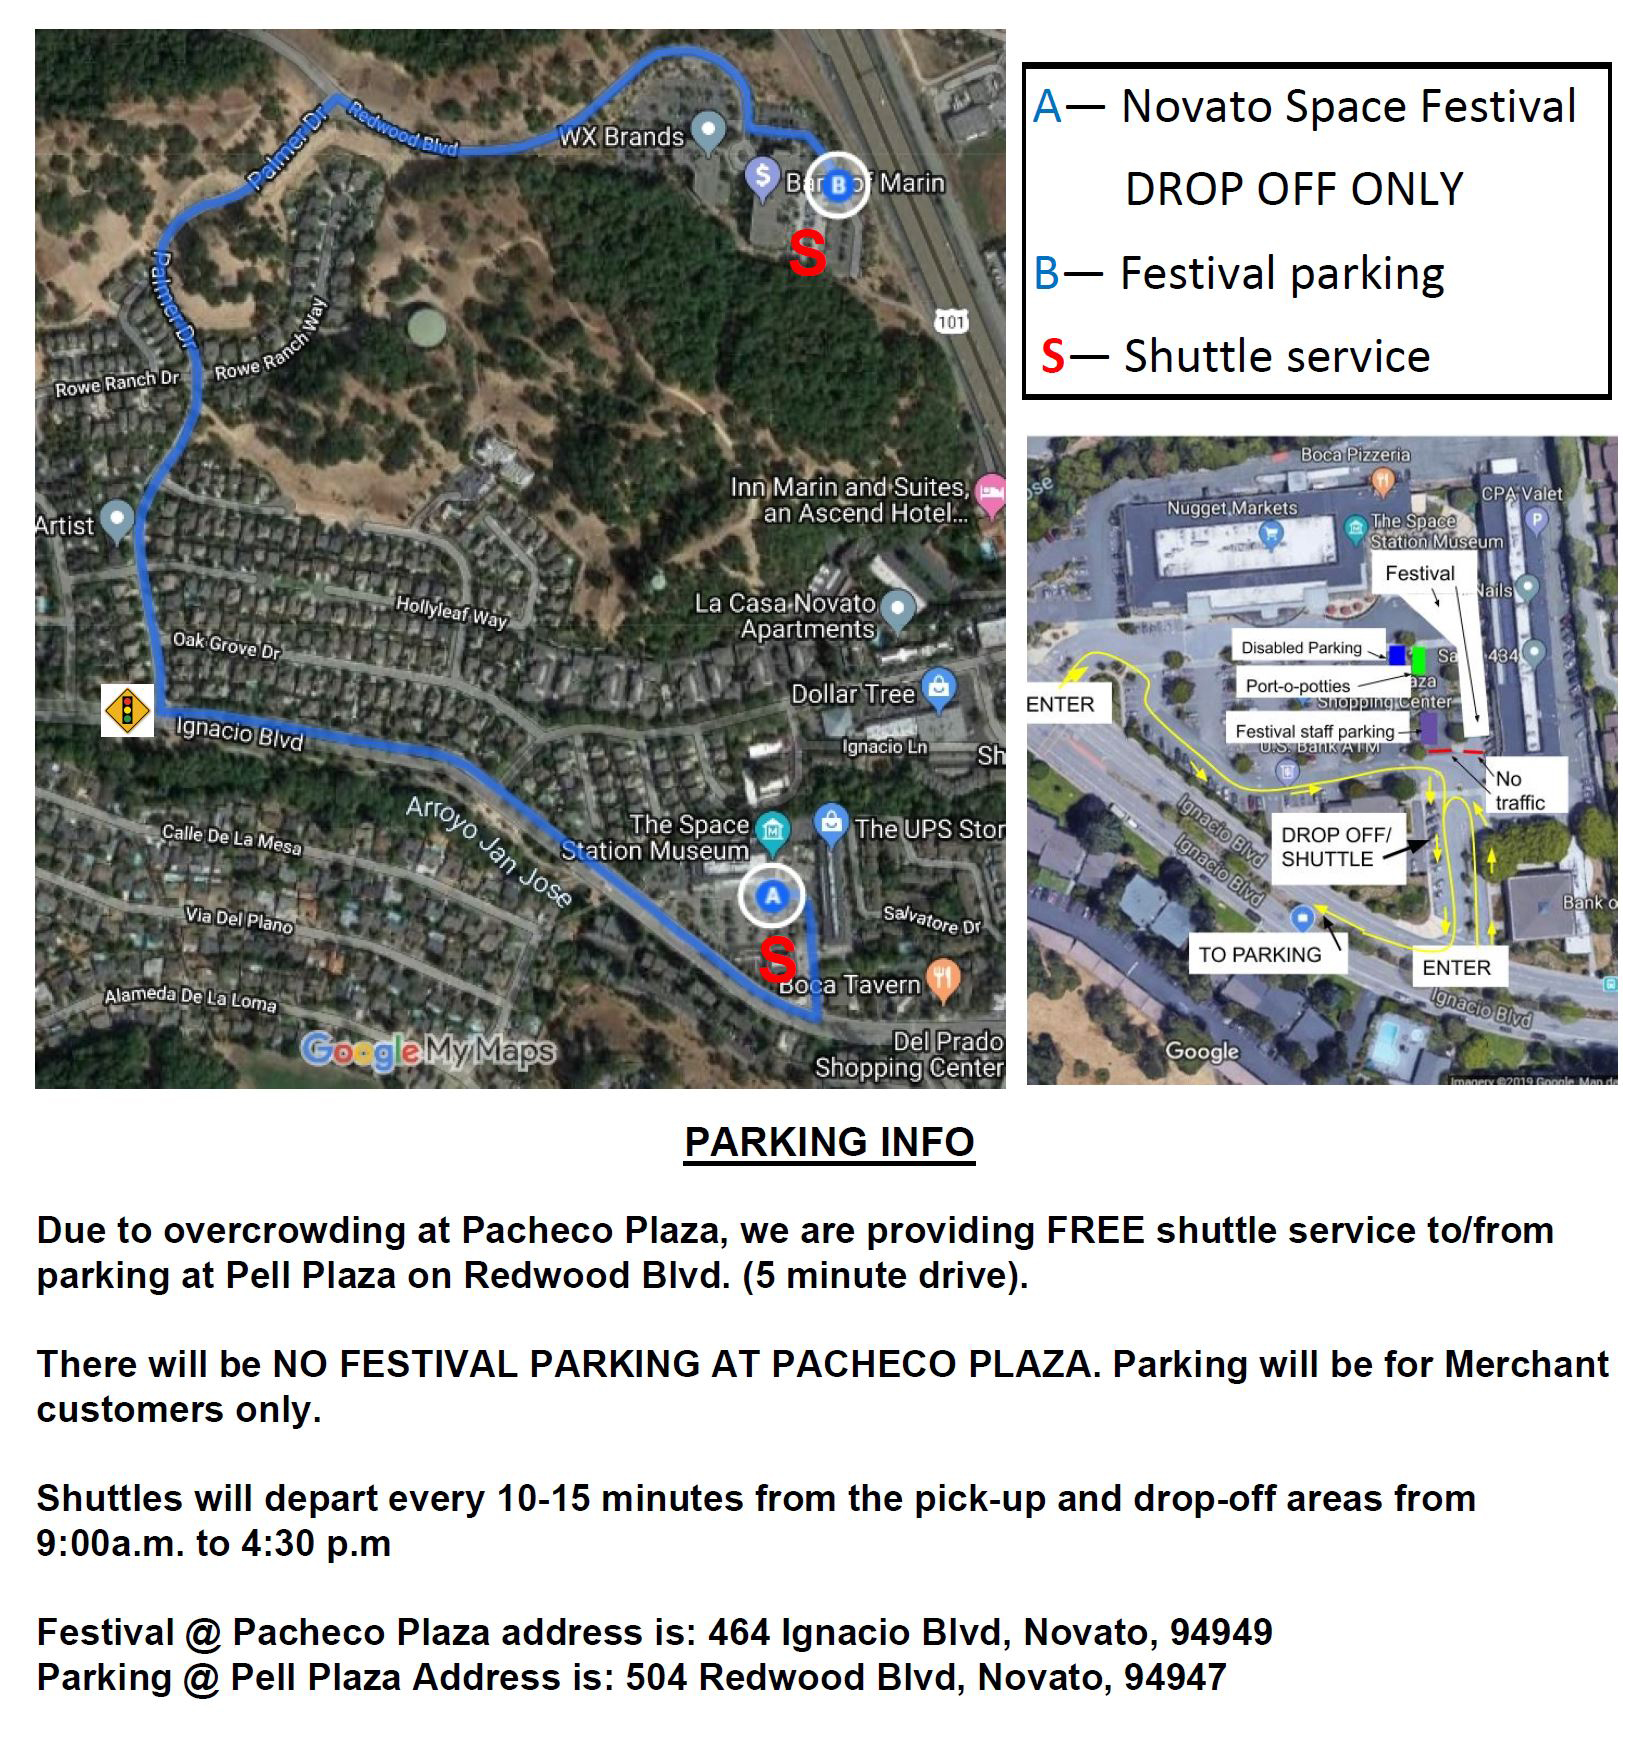 Parking Map for the Novato Space Festival